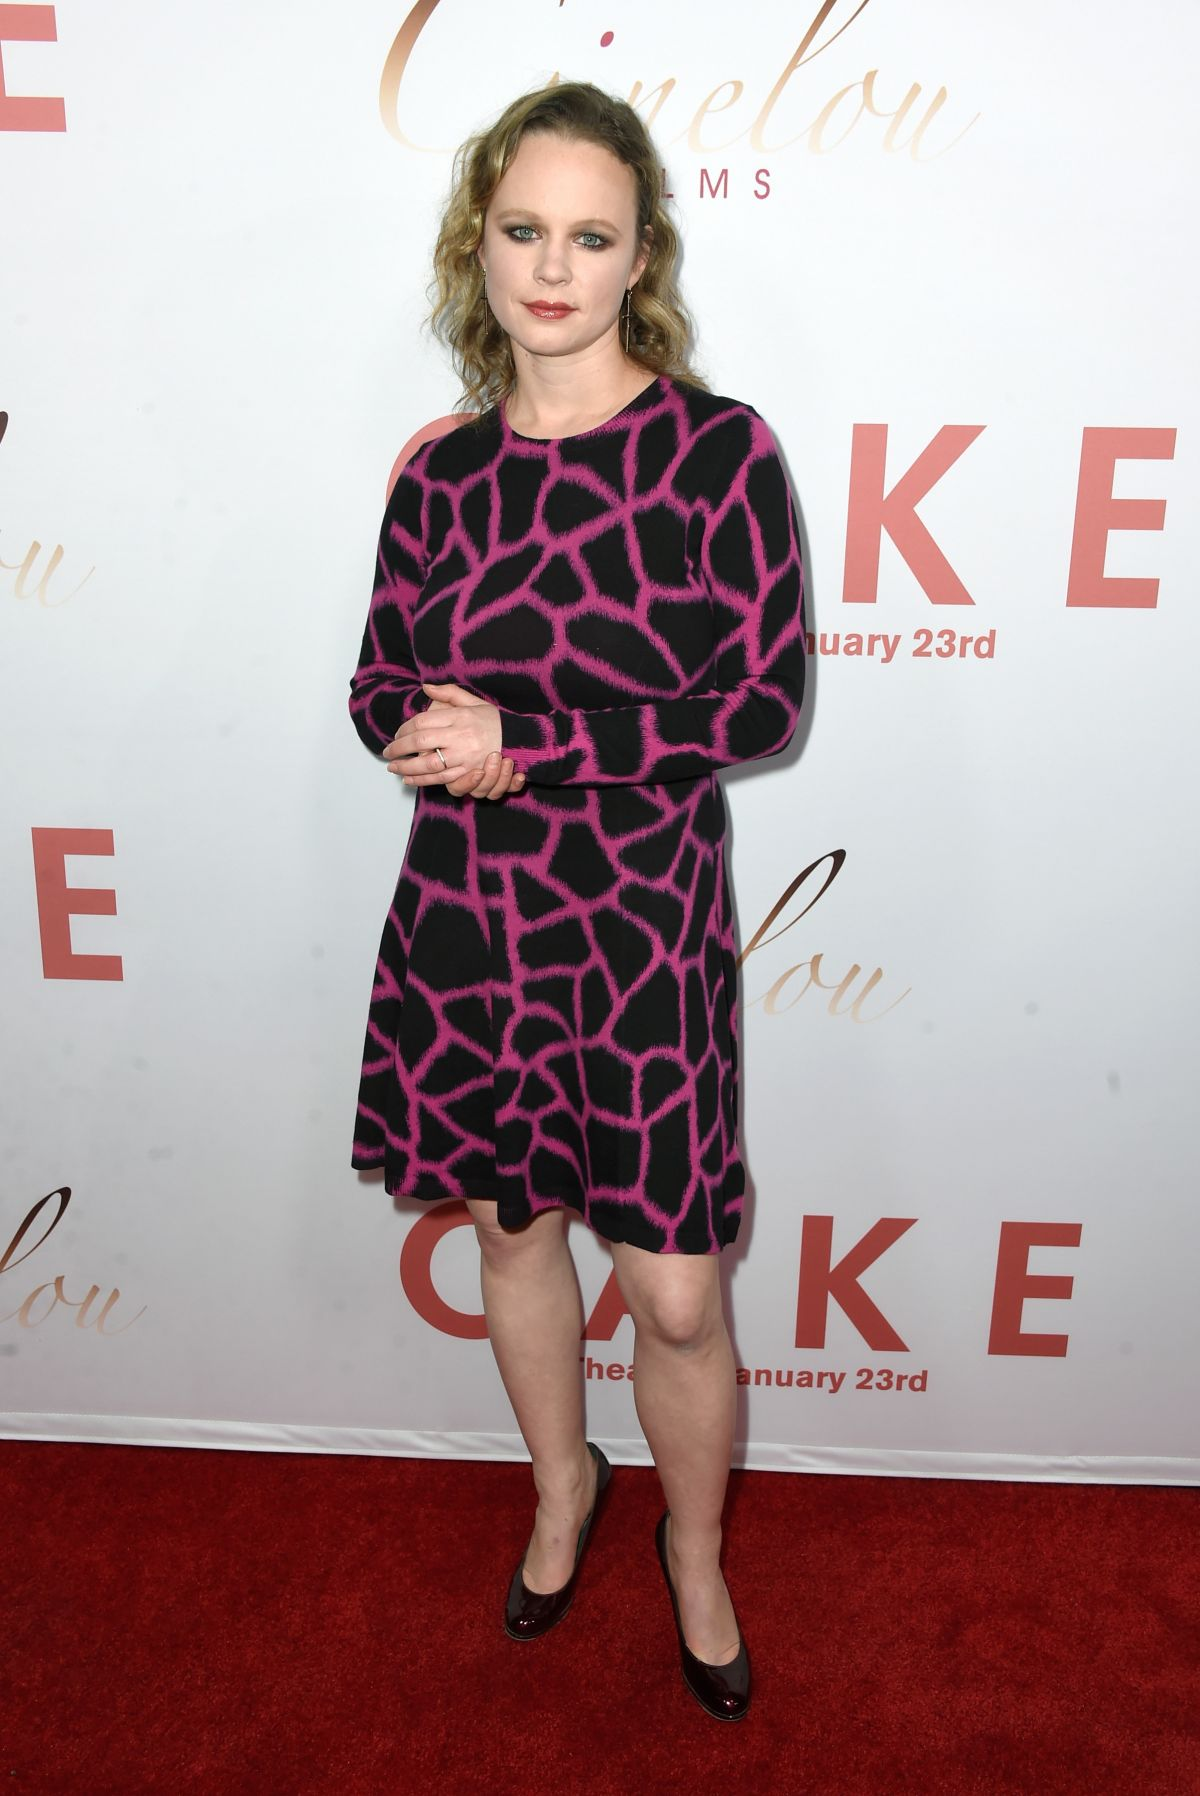 THORA BIRCH at Cake Premiere in Hollywood